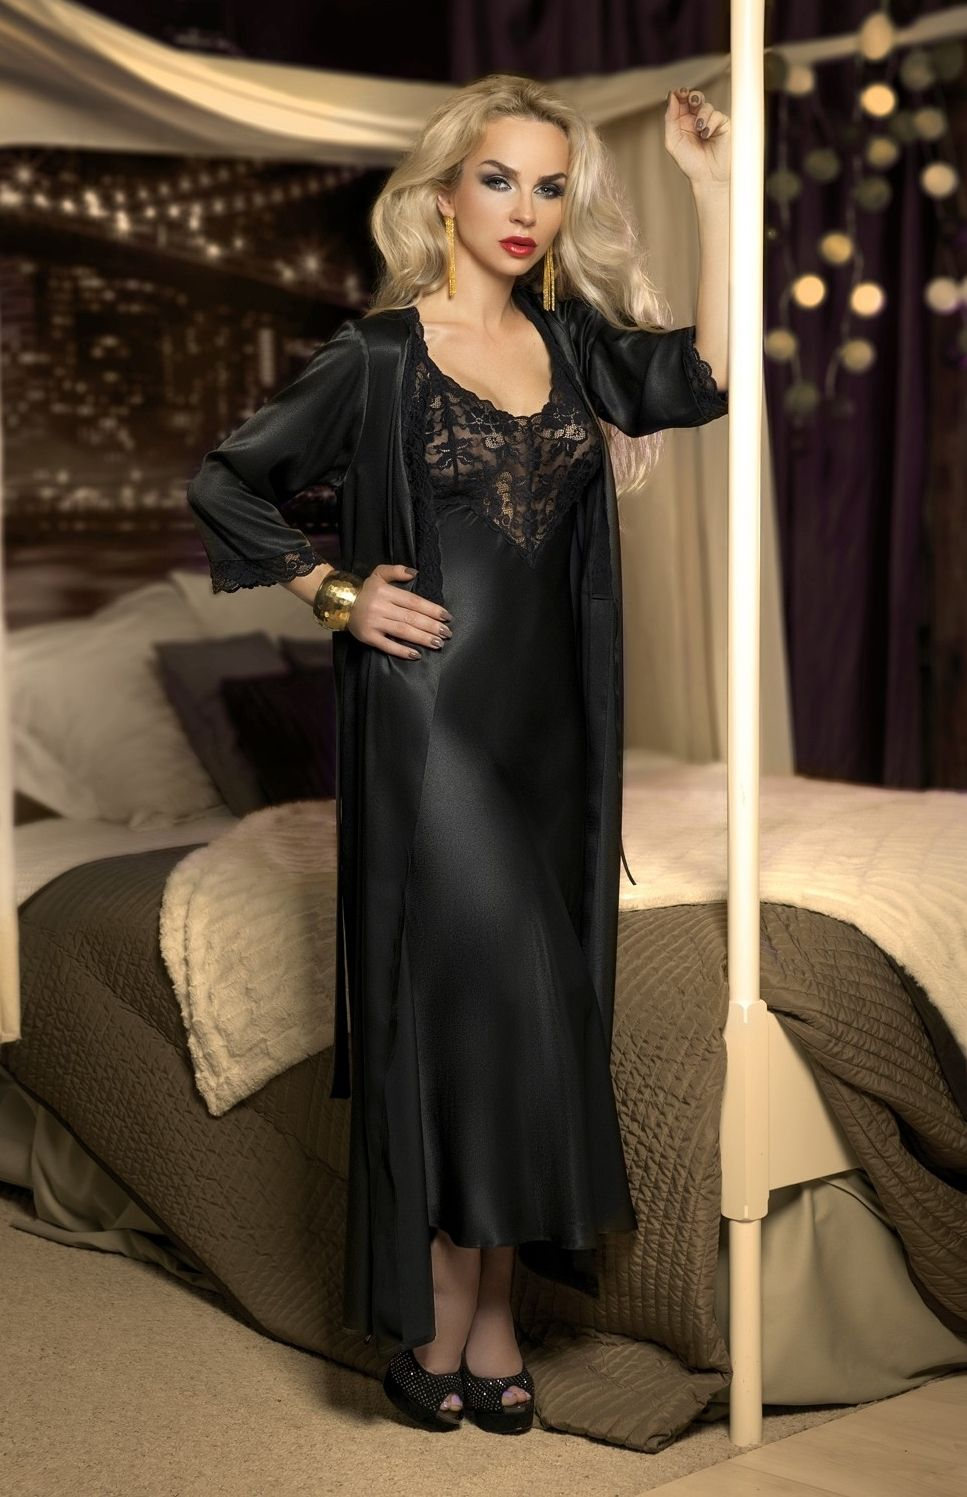 spectaculaire longue chemise de nuit longue noire en satin et dentelle nightdress pinterest. Black Bedroom Furniture Sets. Home Design Ideas